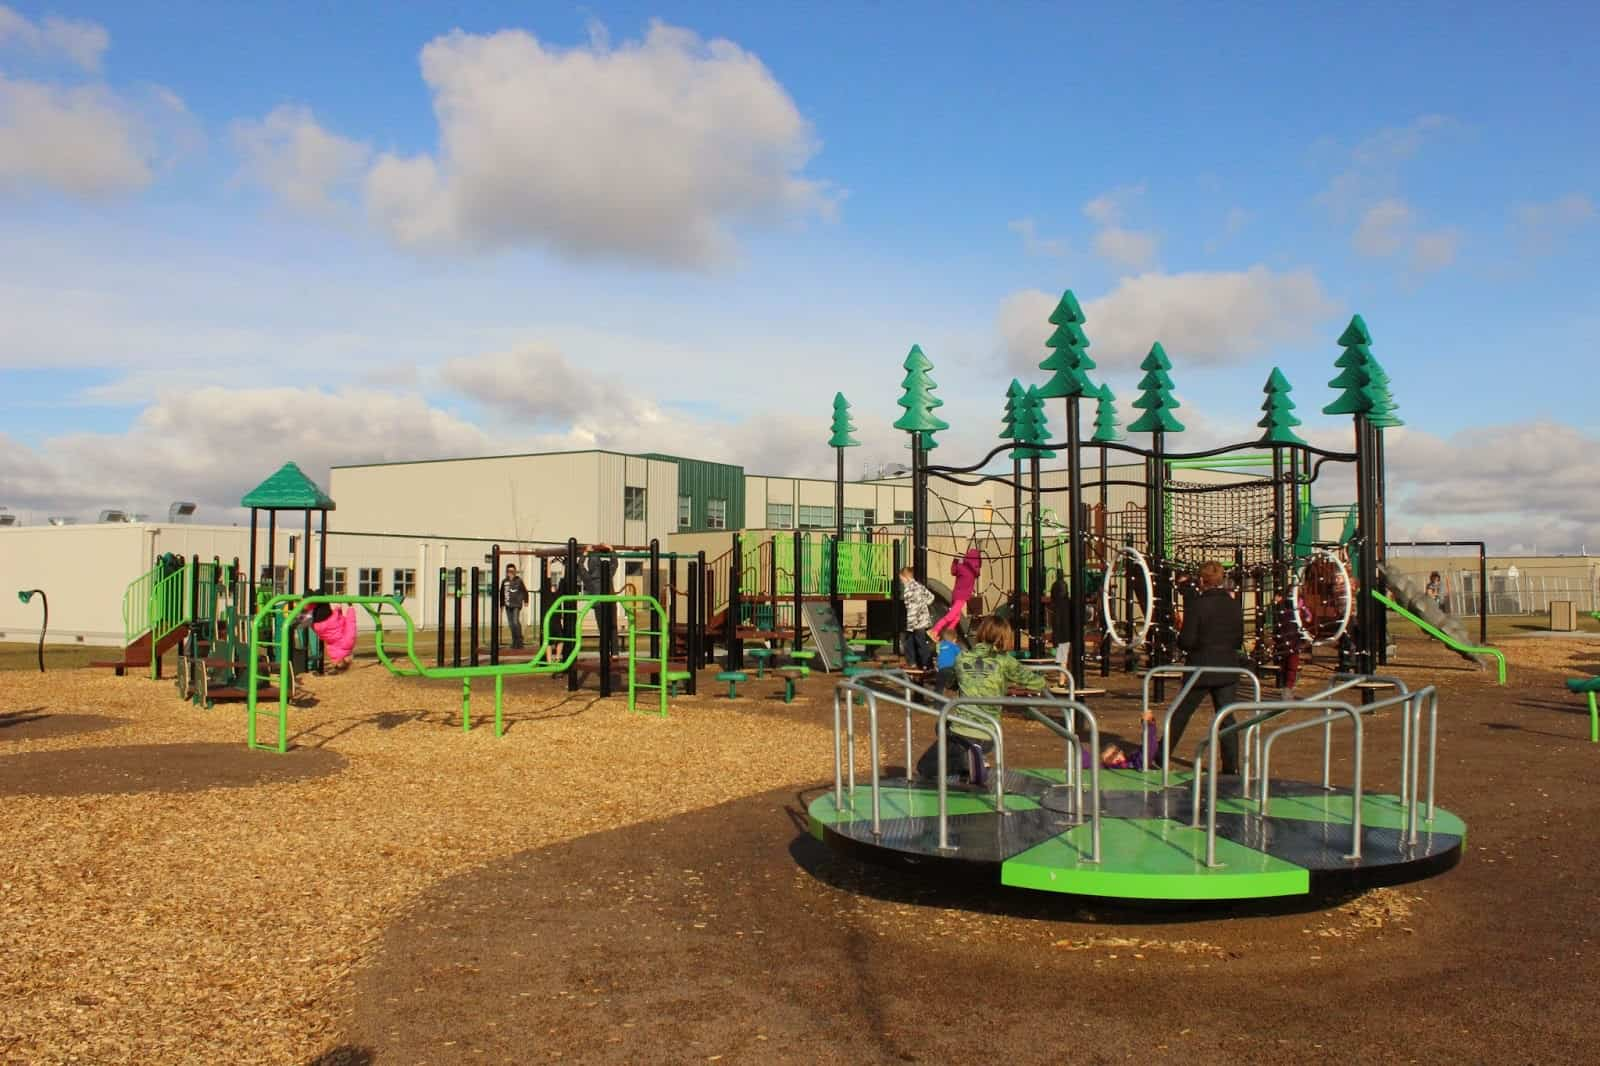 BREAKING: Edmonton Playgrounds are Closed – Stay off the Playground Structures